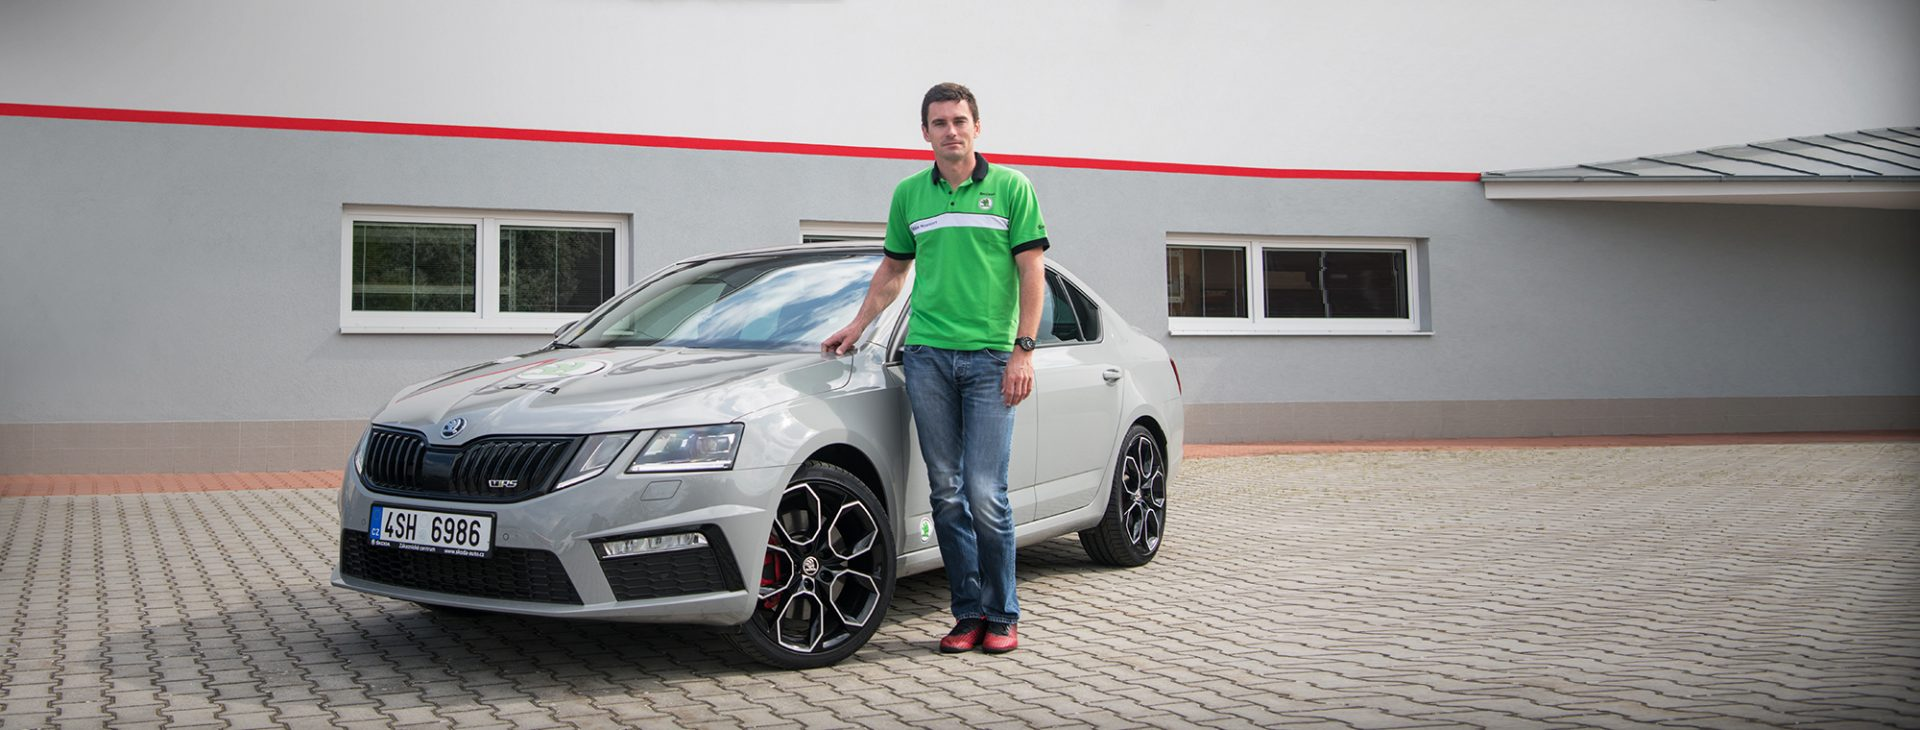 My Life, My Car: Why Jan Kopecký Would Never Go to a Car Wash